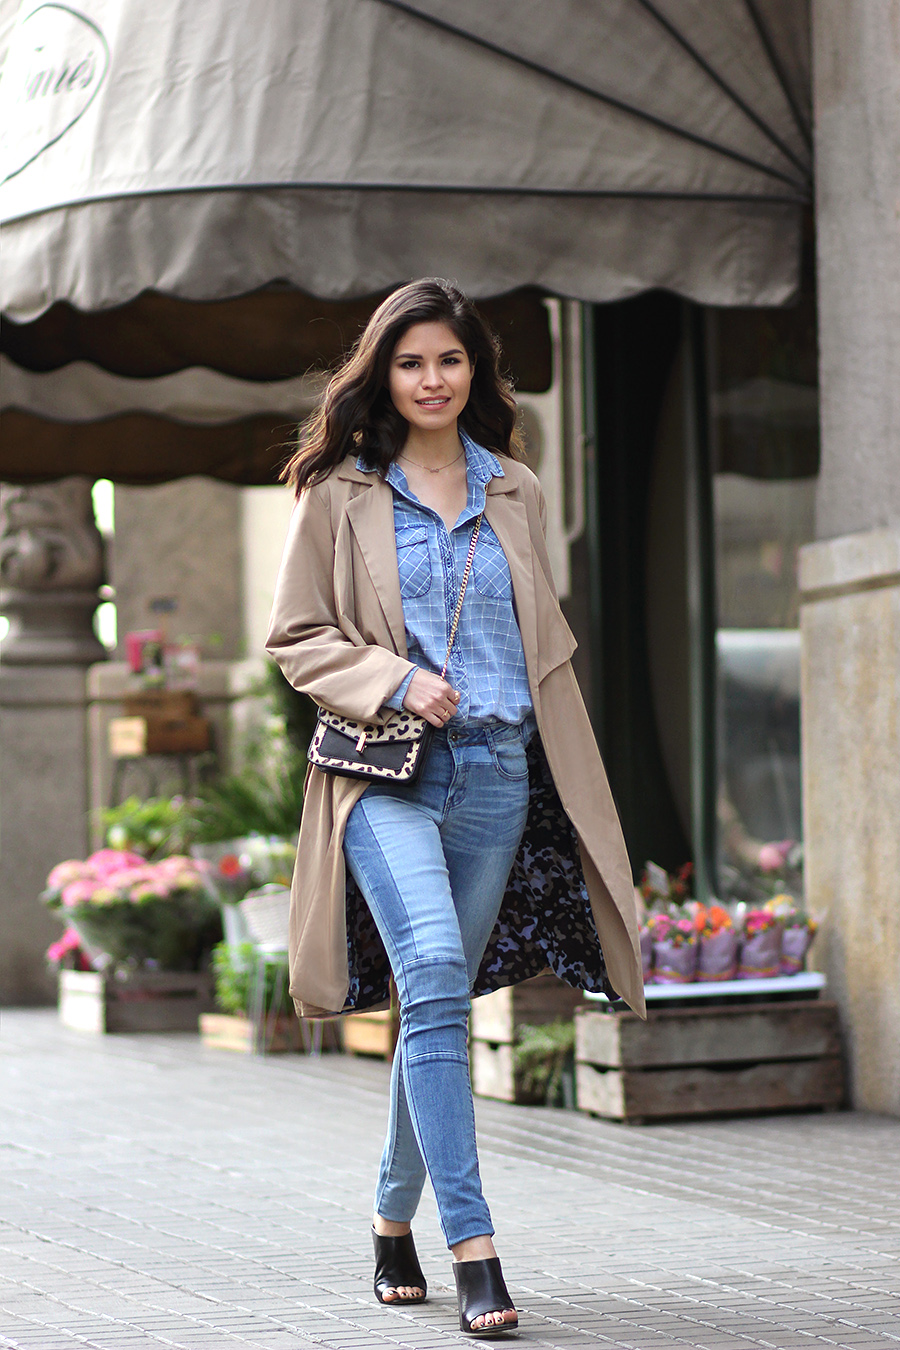 The model in double denim skinny jeans with mules and coat.